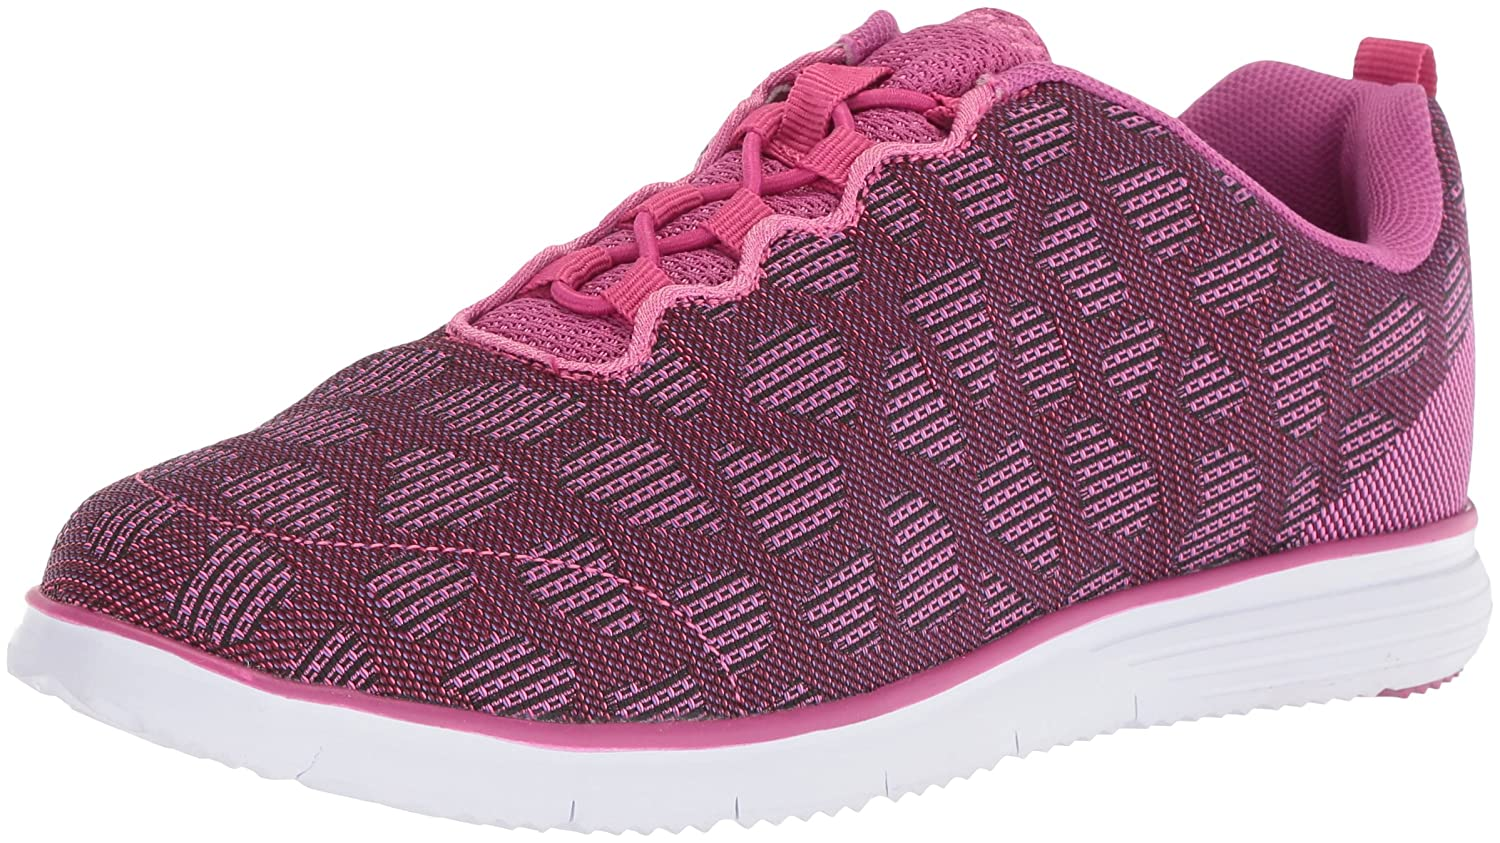 Propét Women's TravelFit Walking US|Berry Shoe B073DLYTK5 11 B(M) US|Berry Walking e670d4